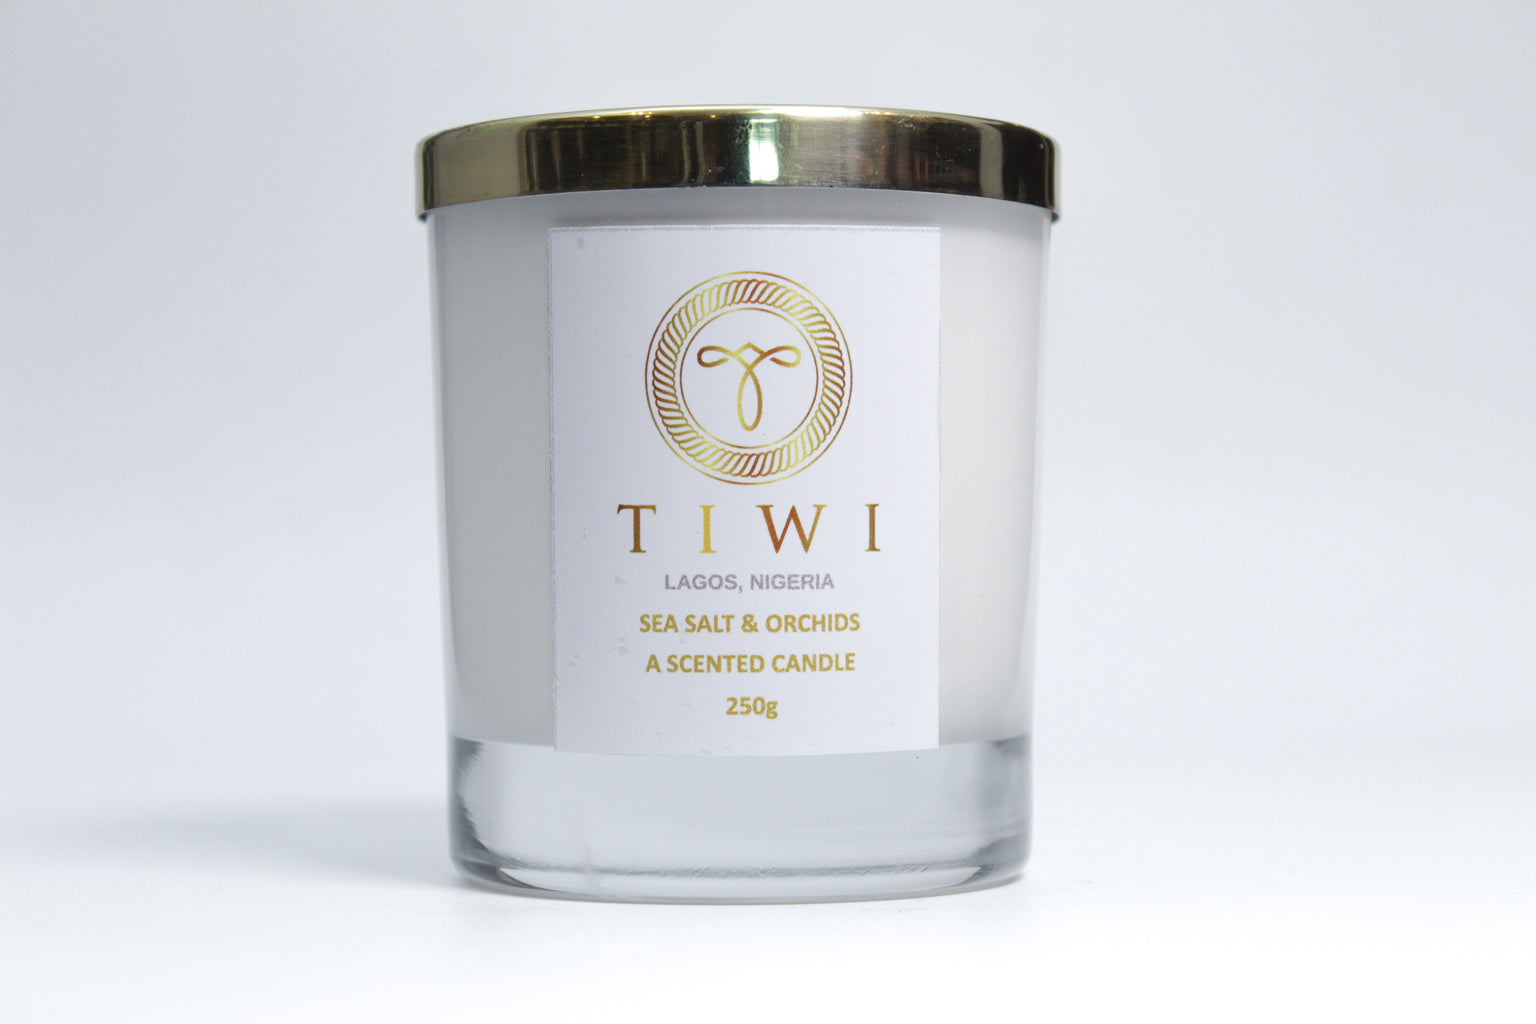 TIWI Sea Salt & Orchids - A Scented Candle - TIWI Home Fragrance